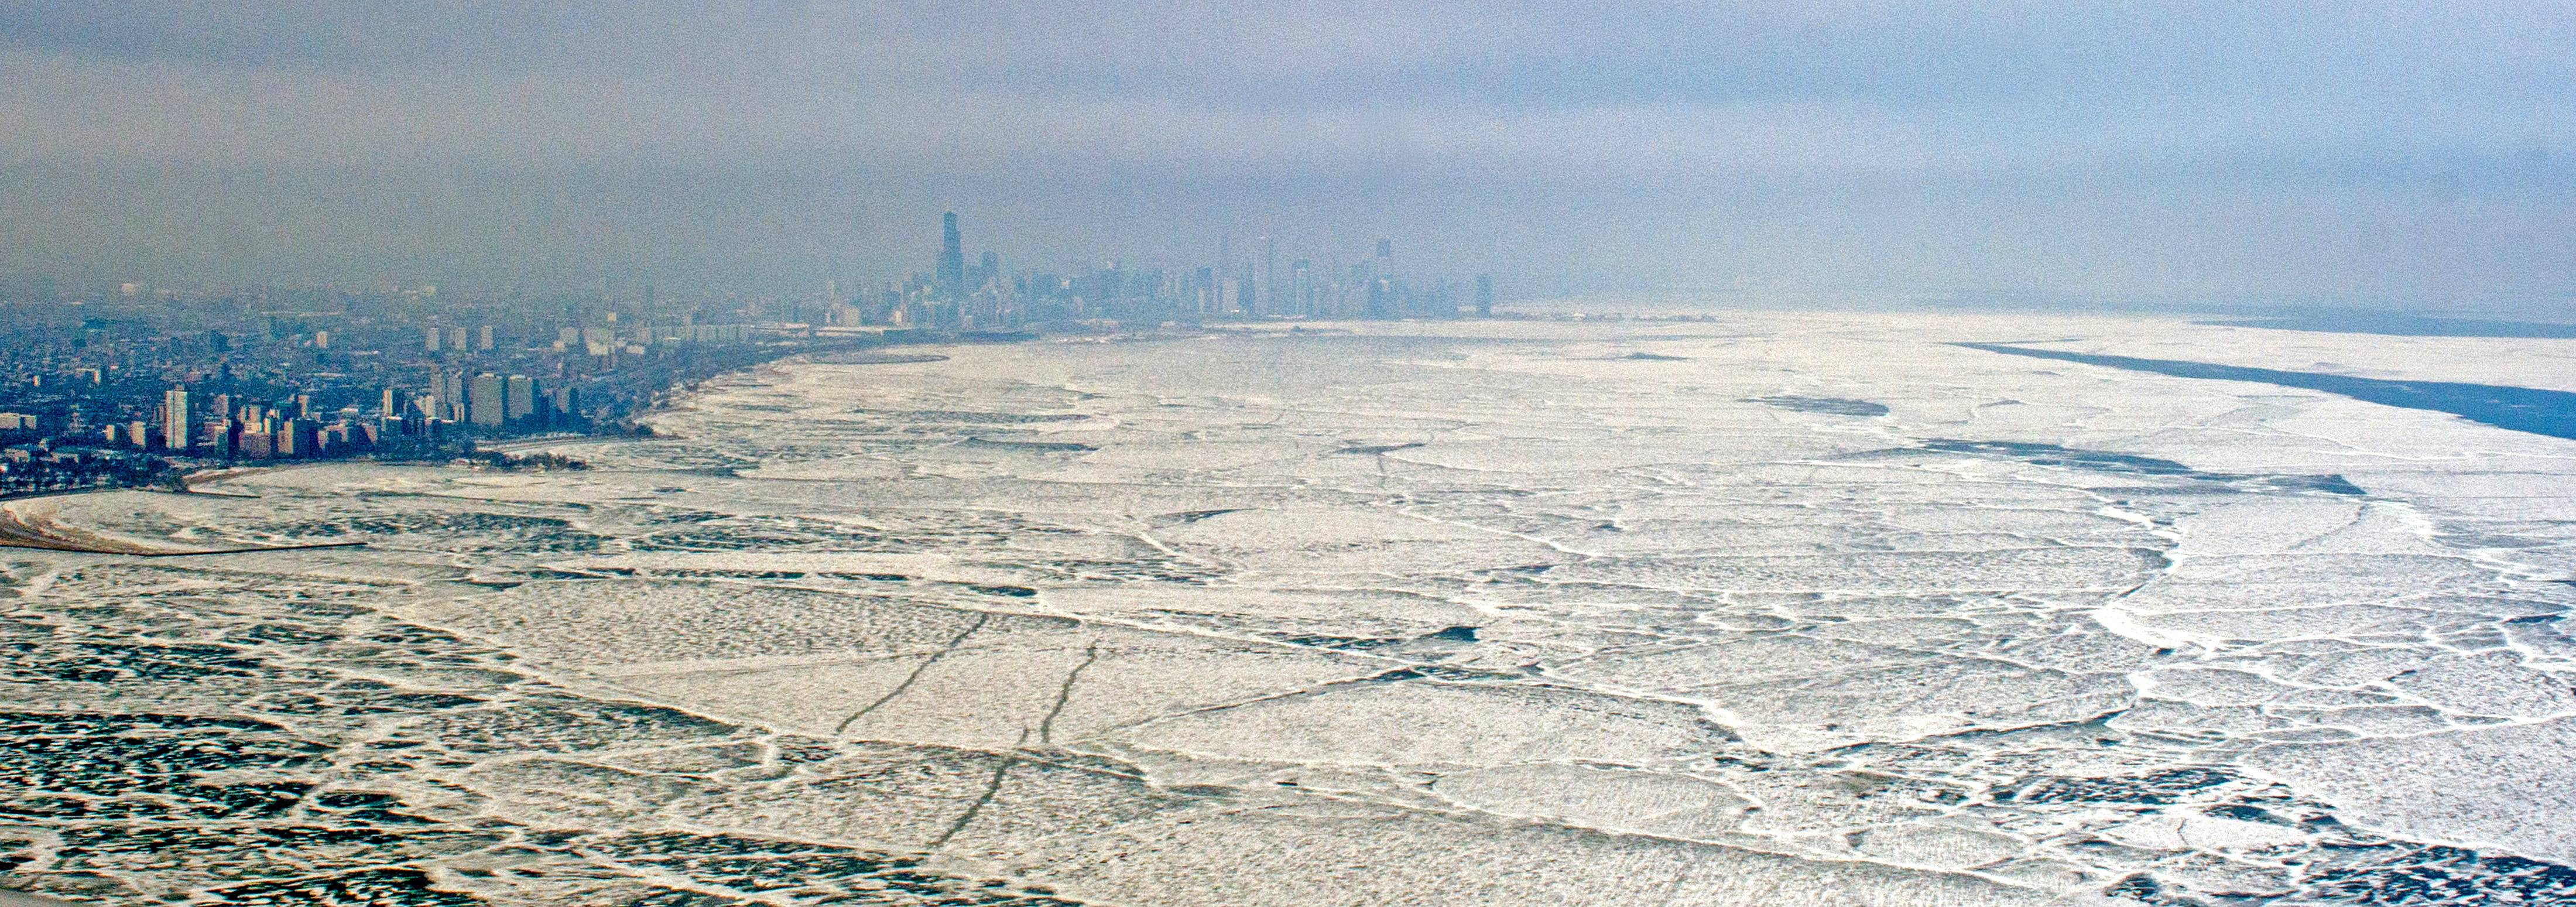 I wanted to snap some photos of frozen Lake Michigan before it all melted.